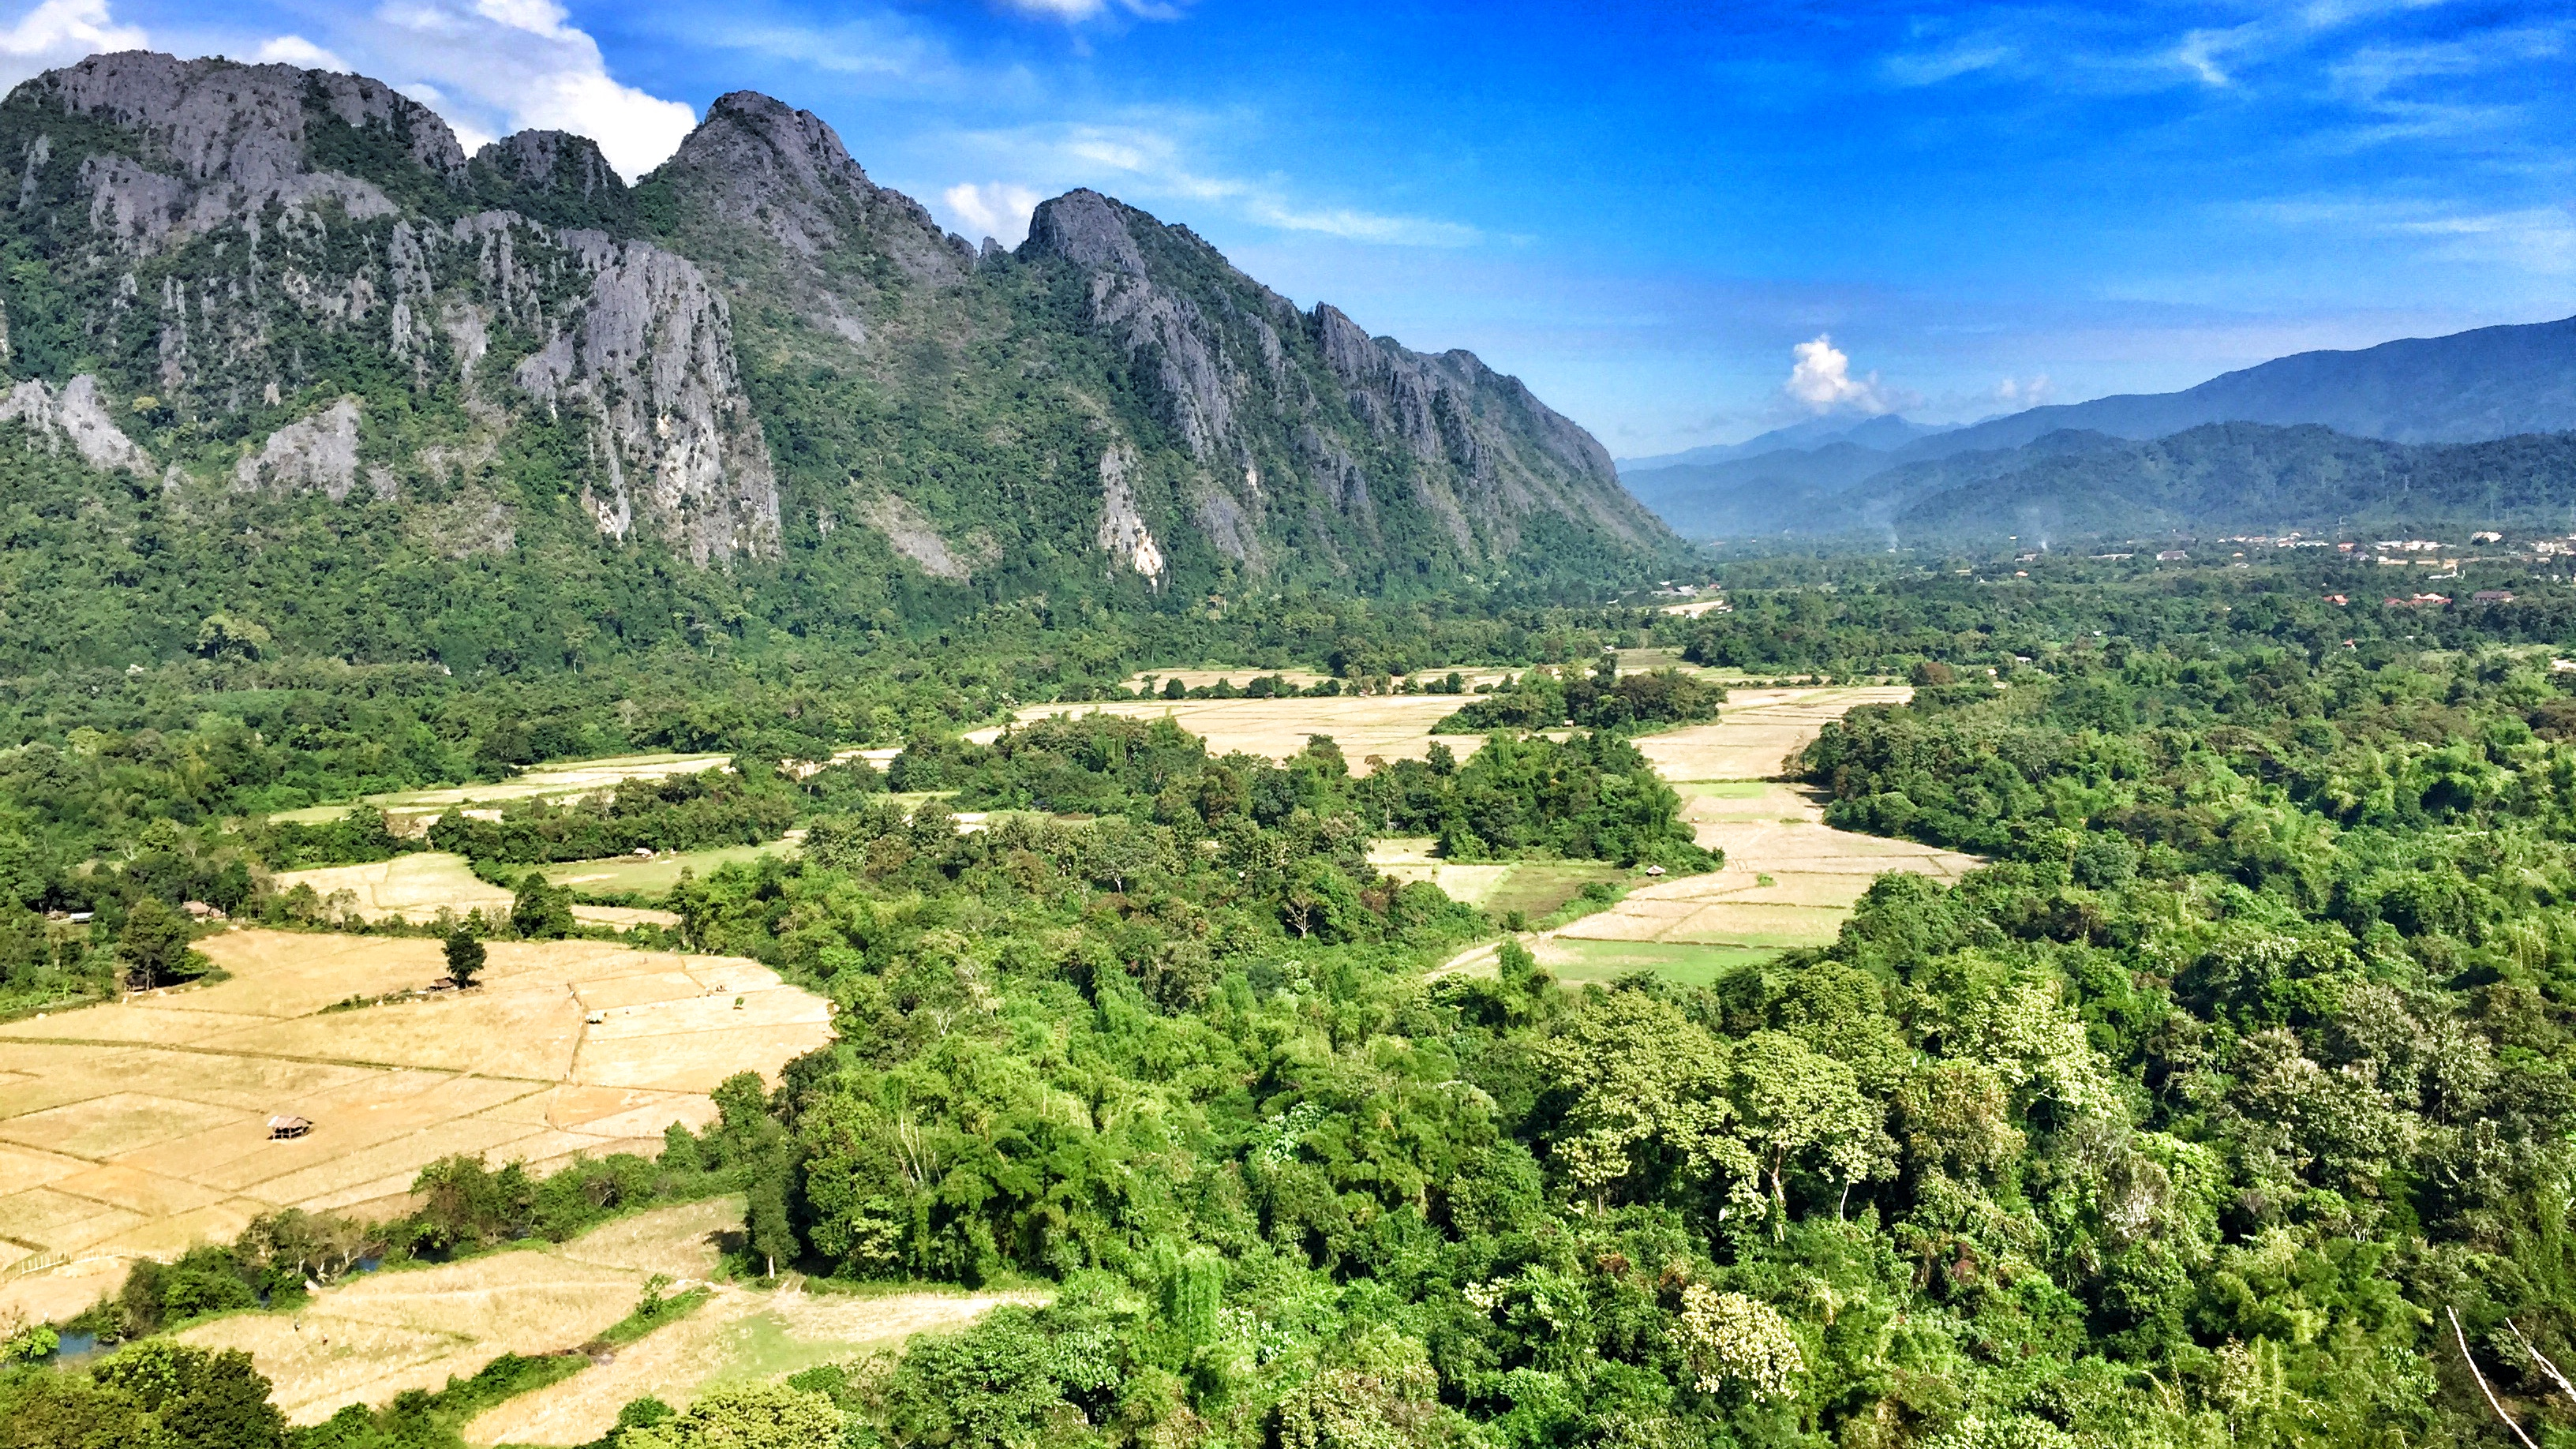 Vang Vieng: Does It Get Any More Gorgeous Than This?!